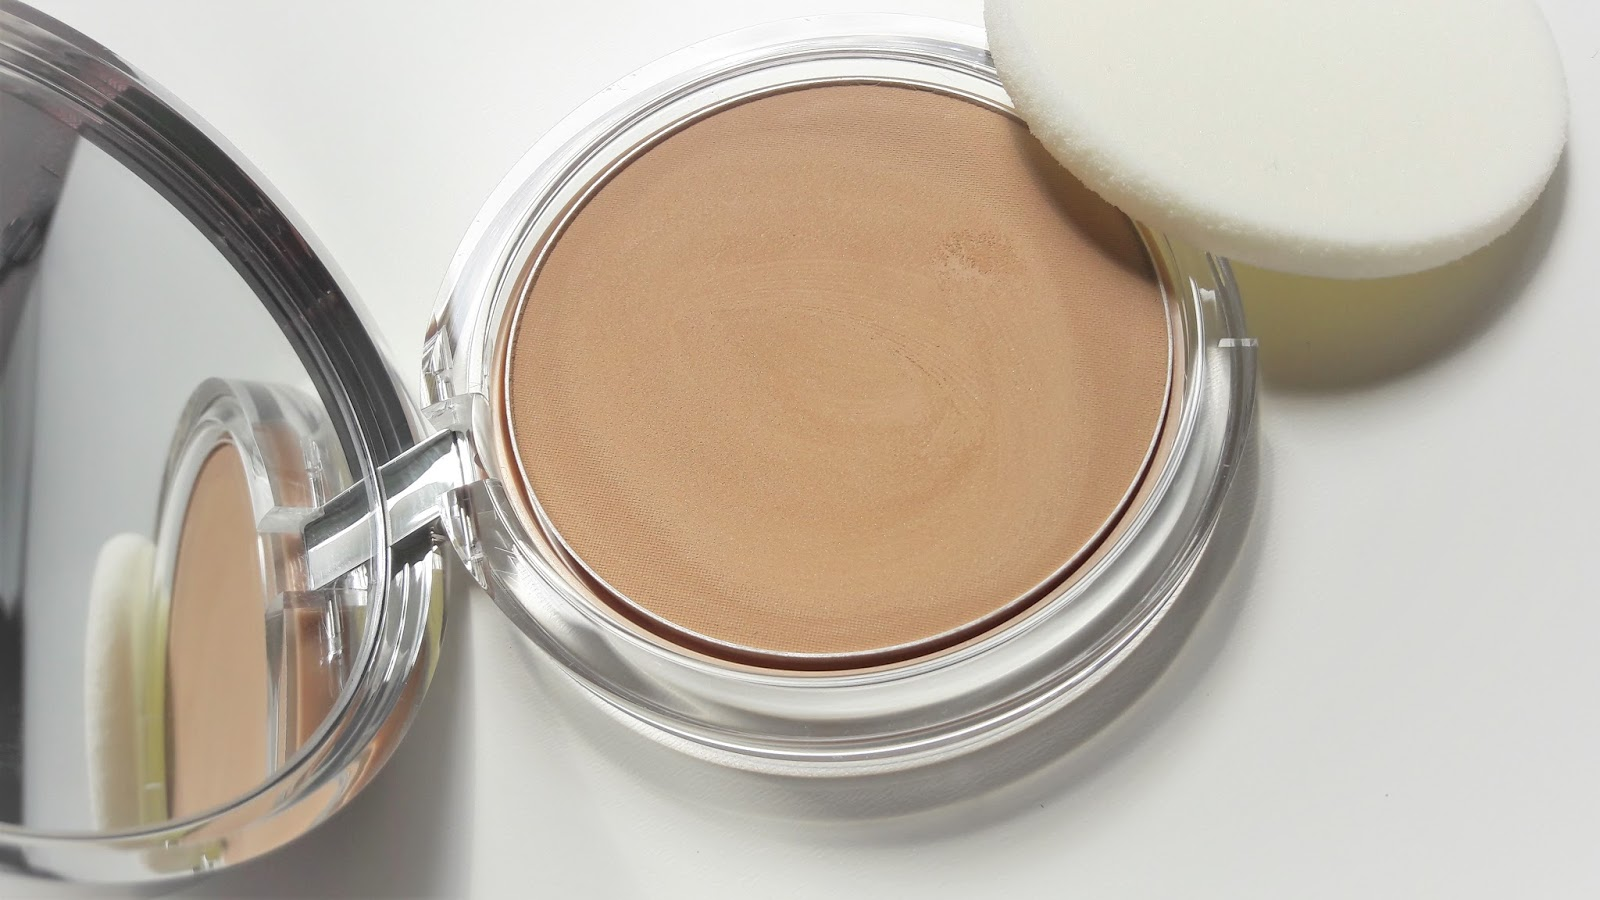 Marketstreet 79: Clinique Almost Powder Makeup SPF 15